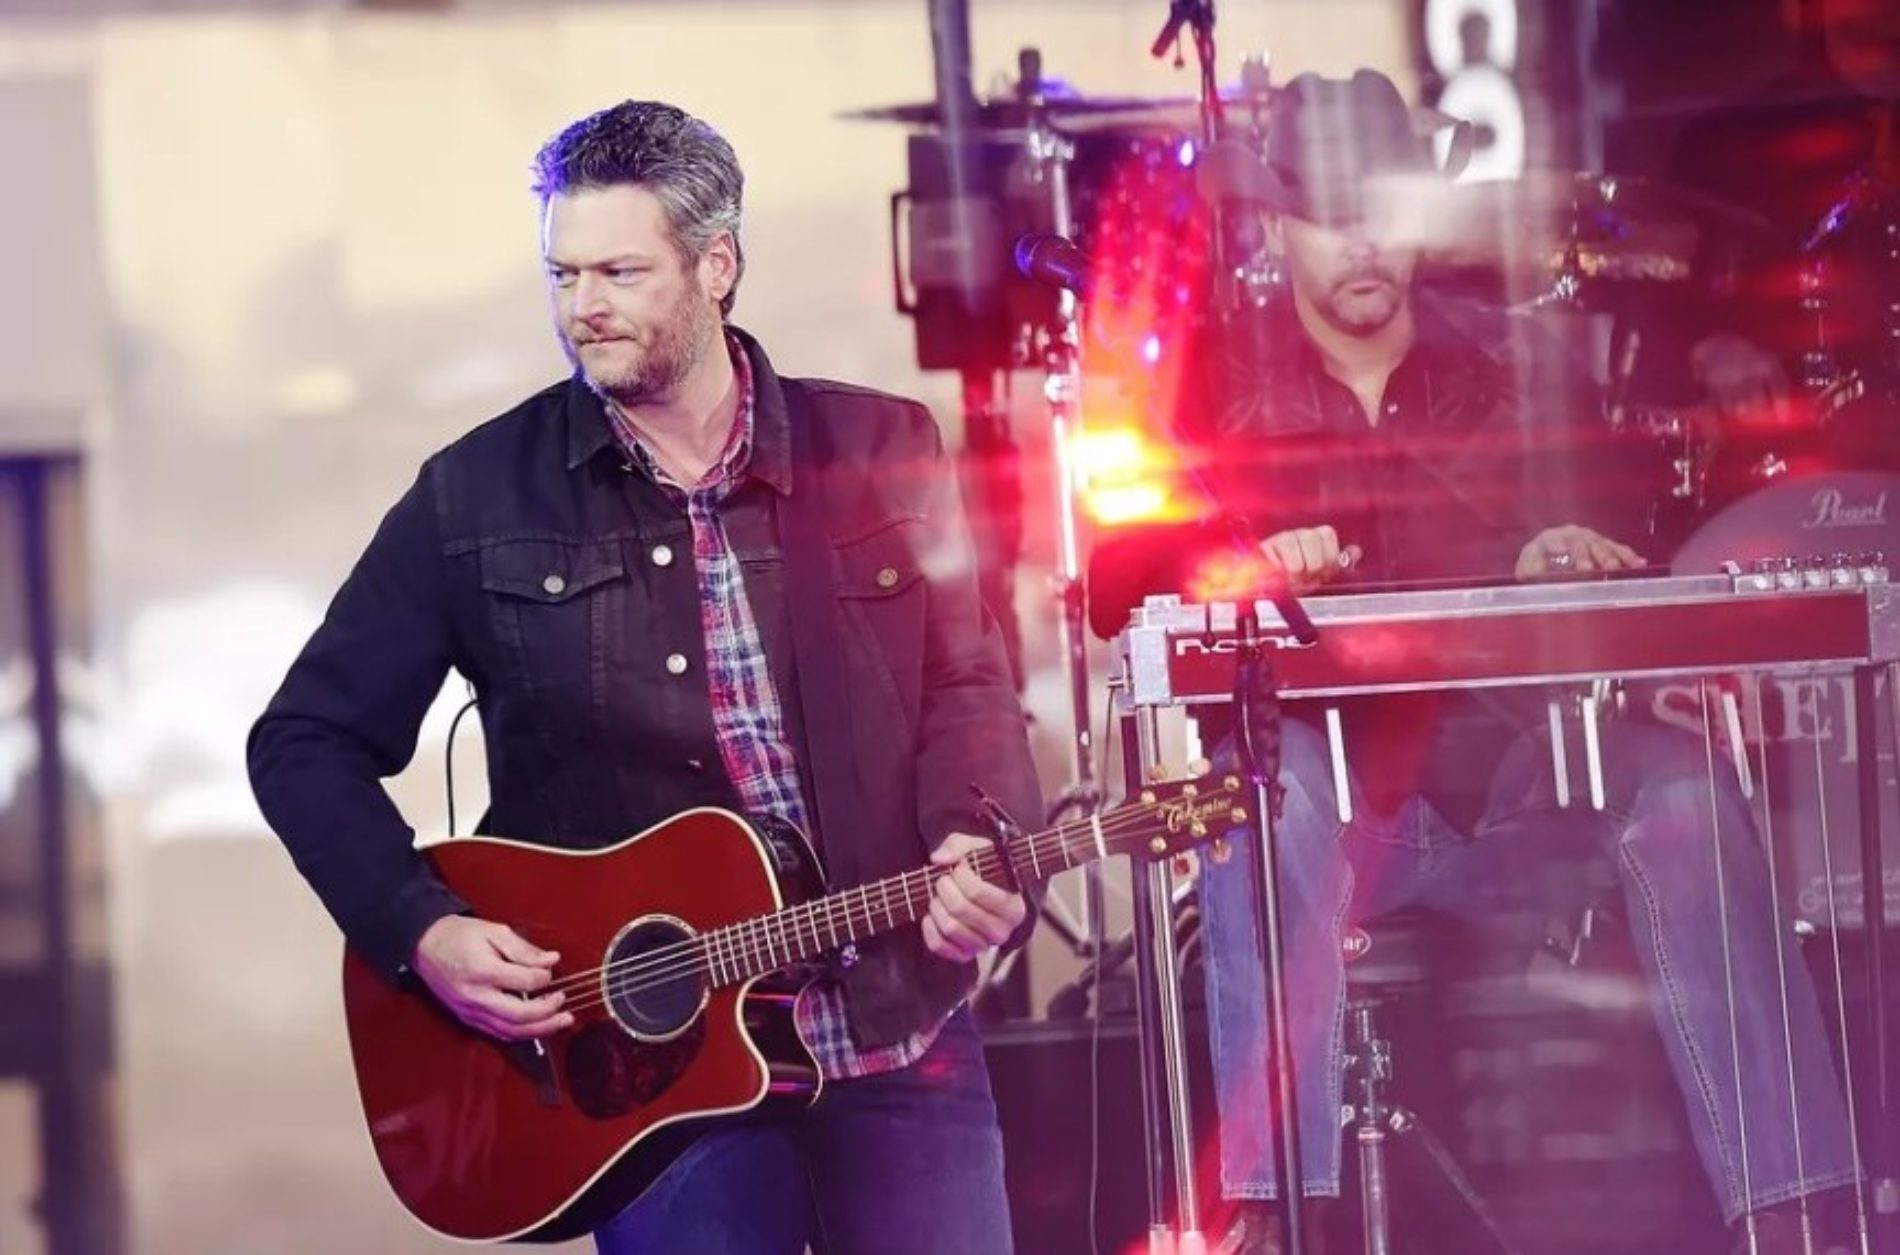 """Blake Shelton is People magazine's """"Sexiest Man Alive"""" of 2017. And the internet isn't having it."""